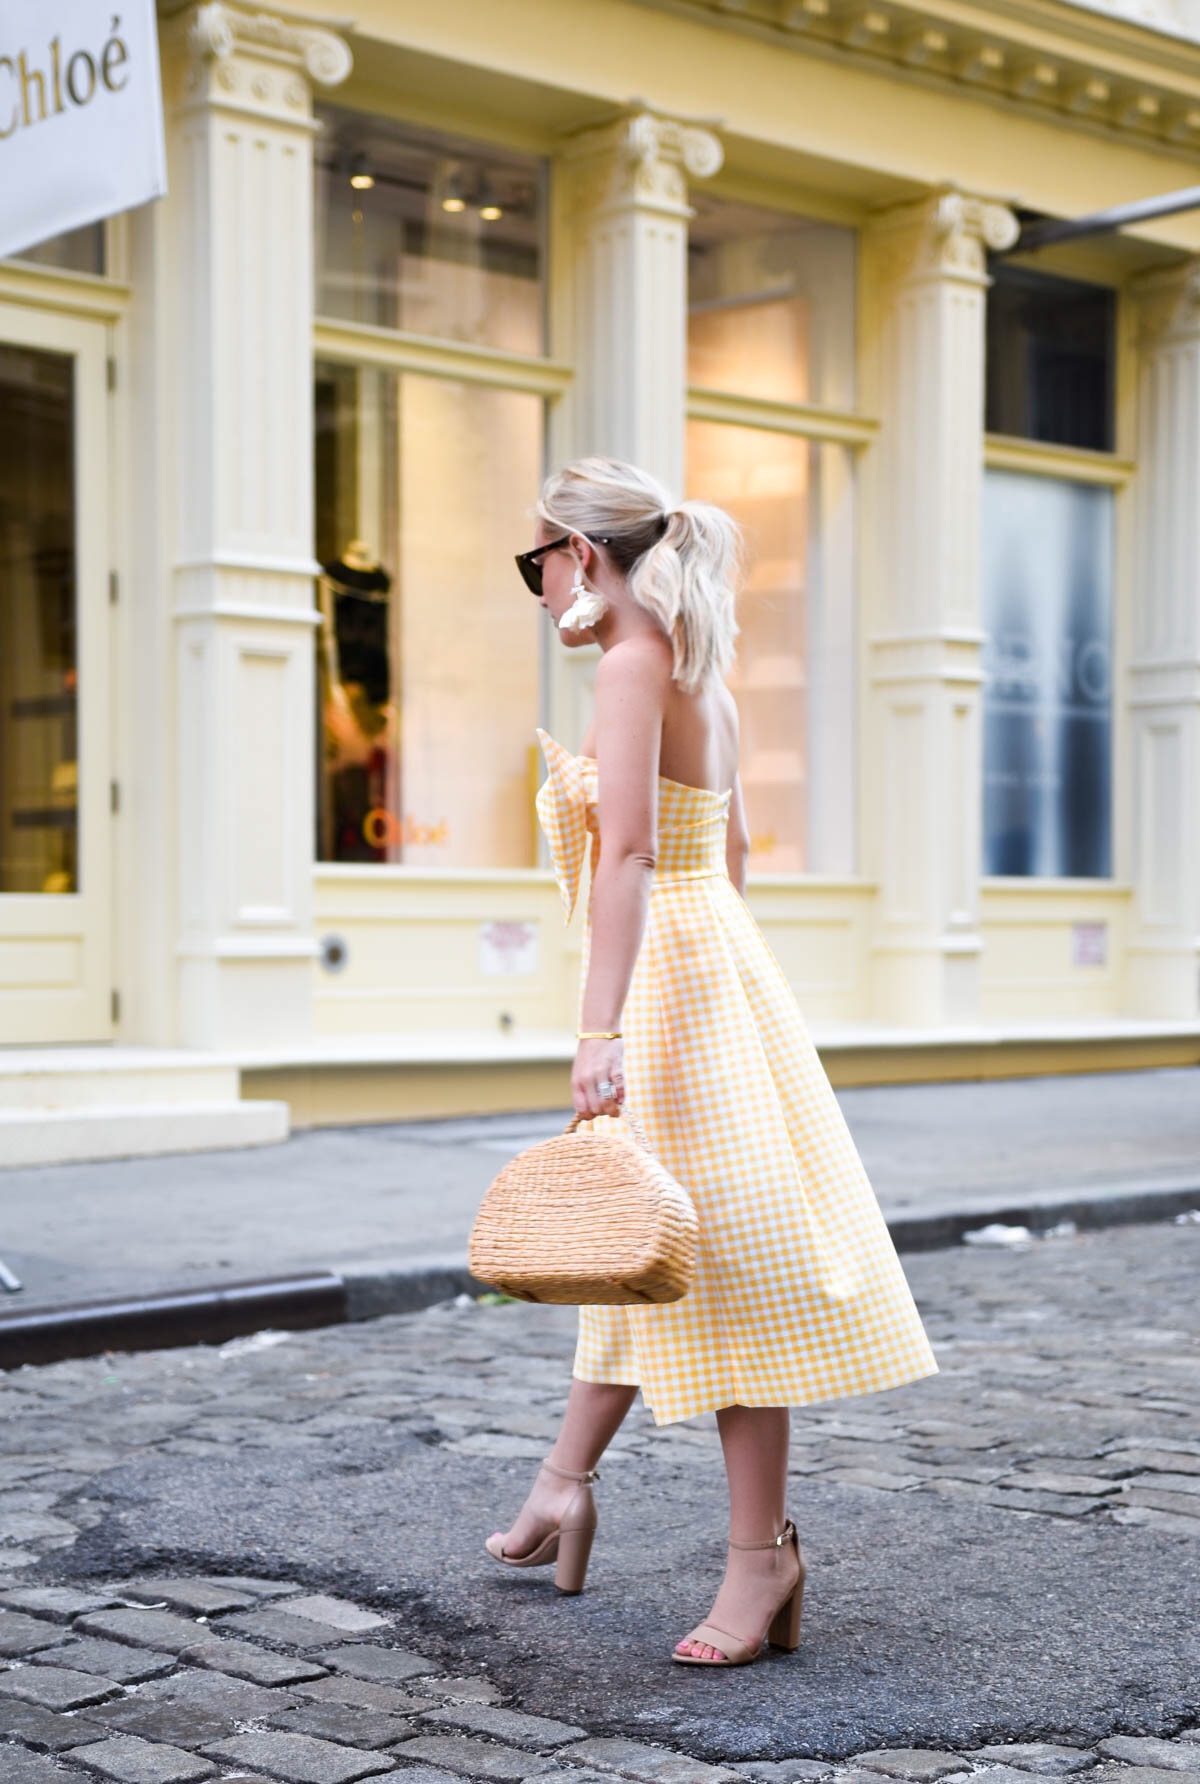 Yellow-Gingham-Dress, Yellow-Bow-Dress, basket-bag, nicola-bathie-earrings